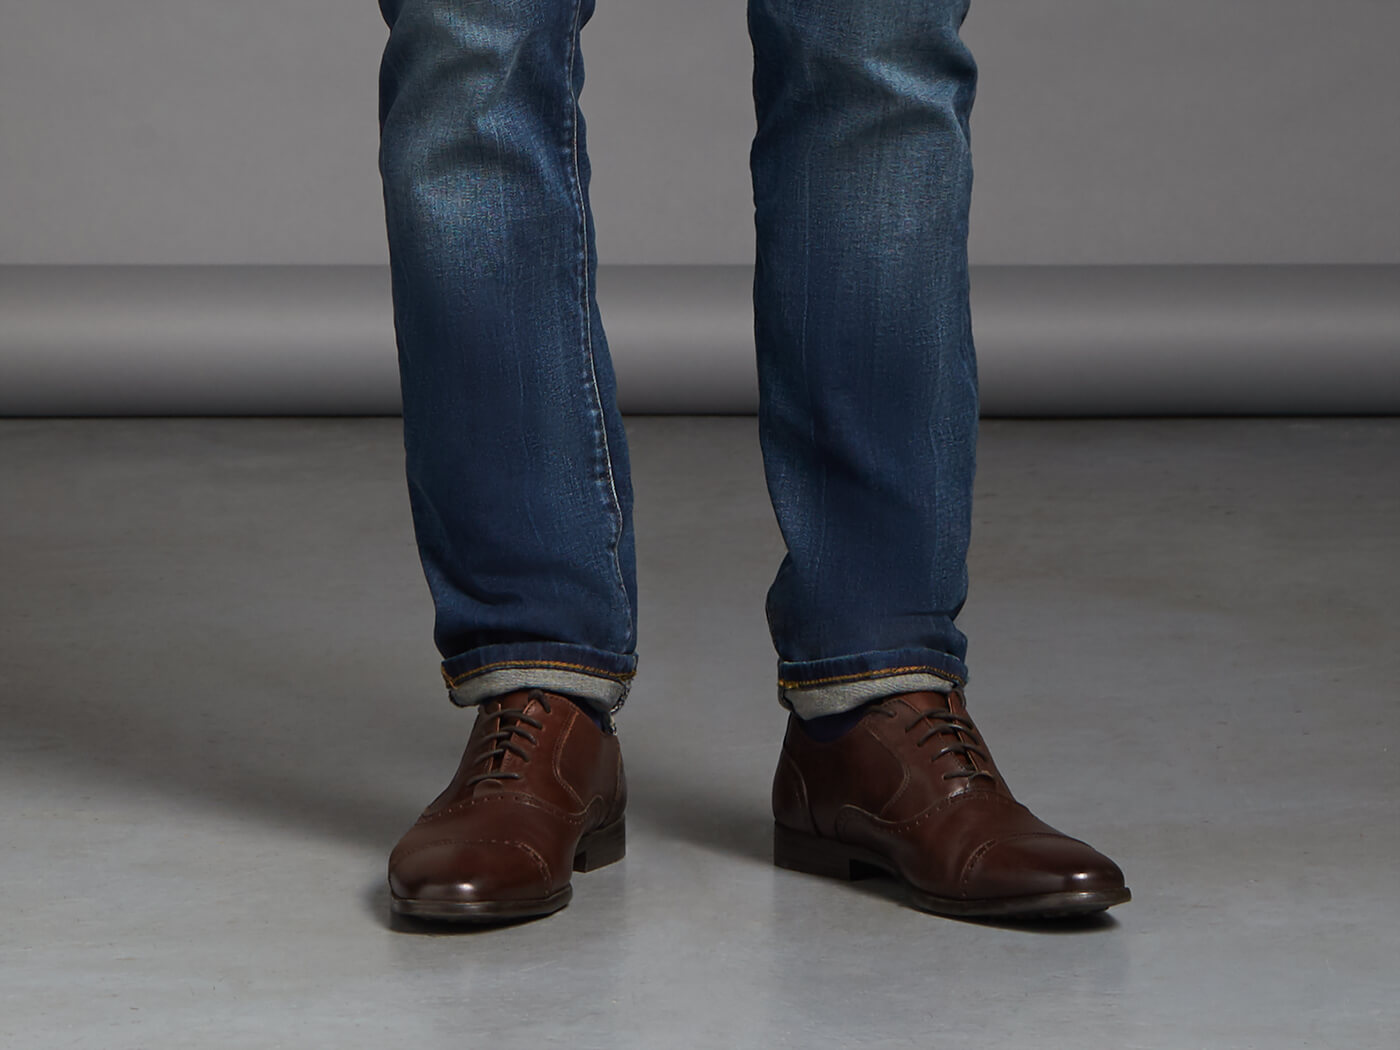 Where Should Dress Pants Sit On Shoes